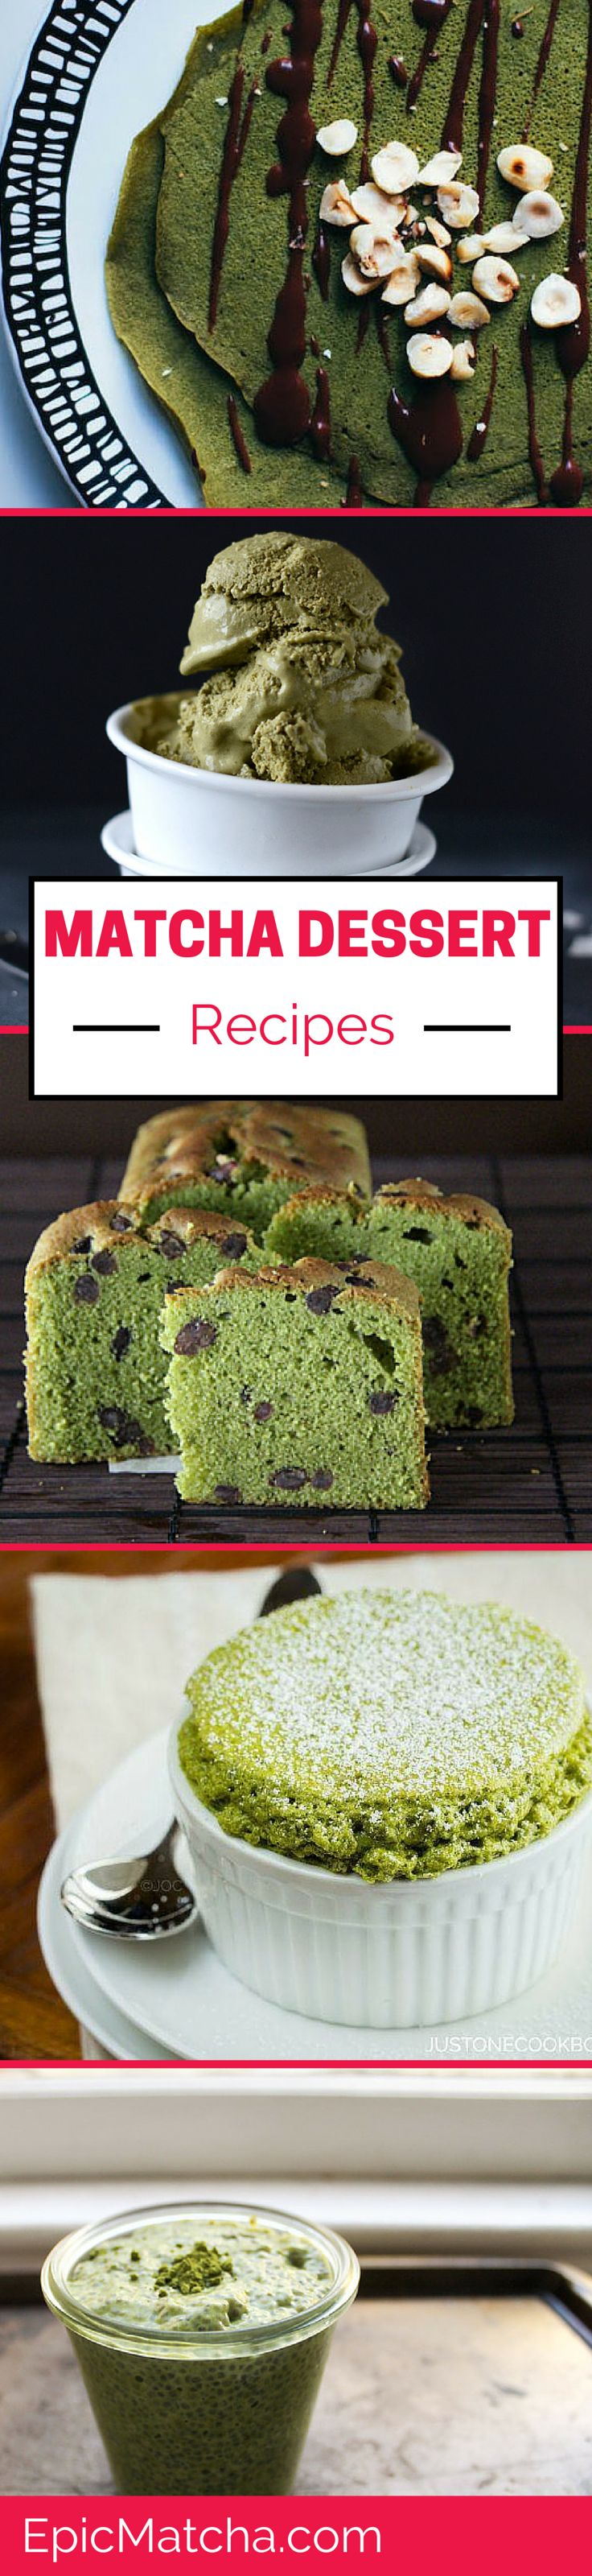 There's no question that dessert is the favorite ending to any meal. It's true that matcha aficionados can add matcha green tea powder to any dessert recipe, but the following matcha recipes were crafted with delicate taste of matcha in mind. Discover our mouth-watering matcha dessert recipes, including gluten-free matcha crêpes, matcha green tea ice cream, matcha pound cake, matcha souffle, and matcha chia pudding. Click to read these delicious #matcha recipes…